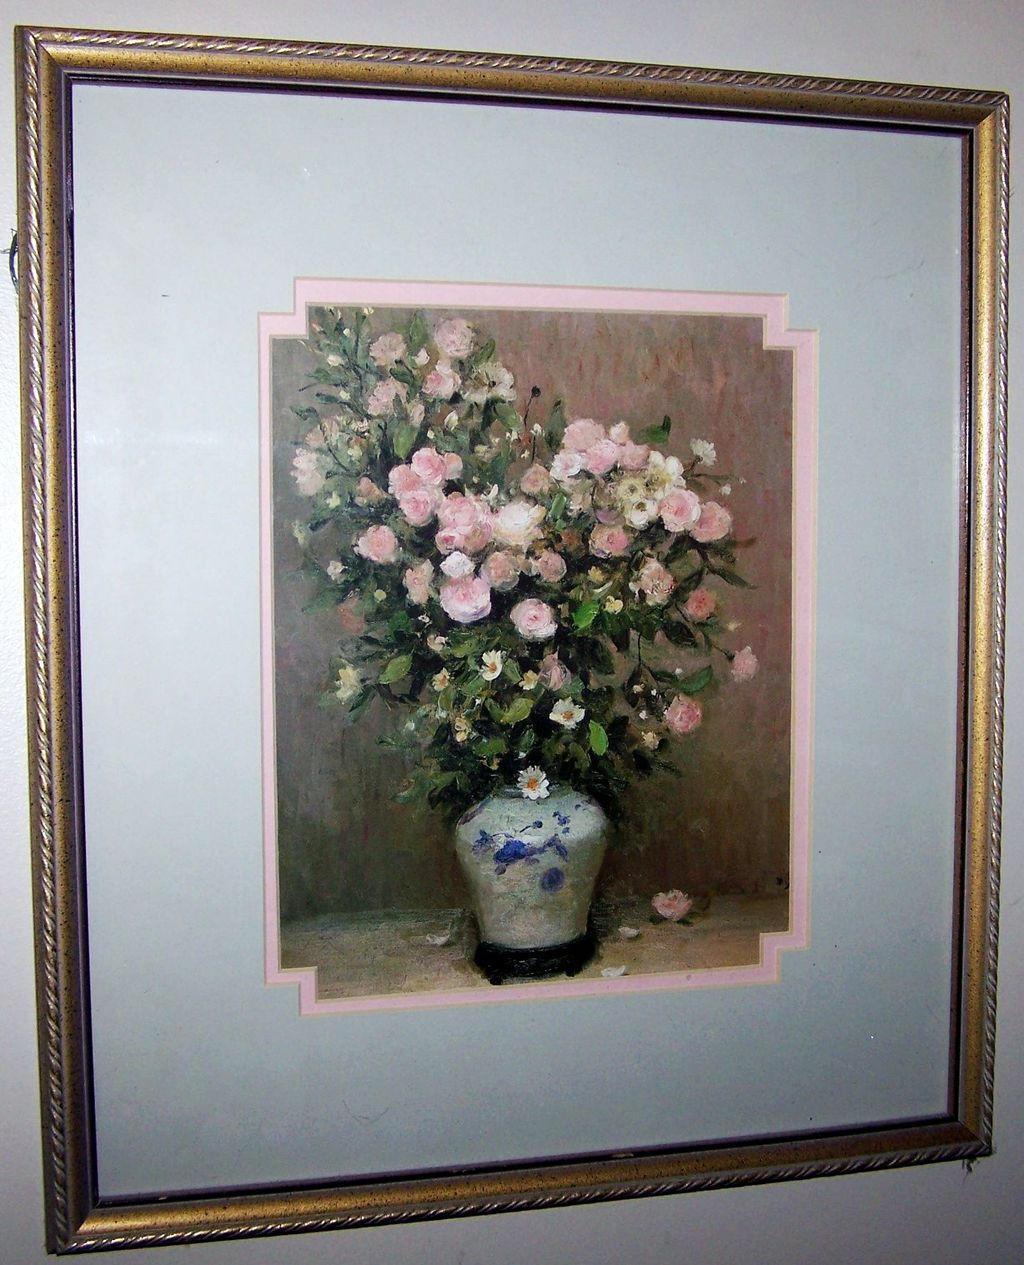 Framed Vintage Botanical  Rose & Daisy Floral Print Decorative Wood Frame